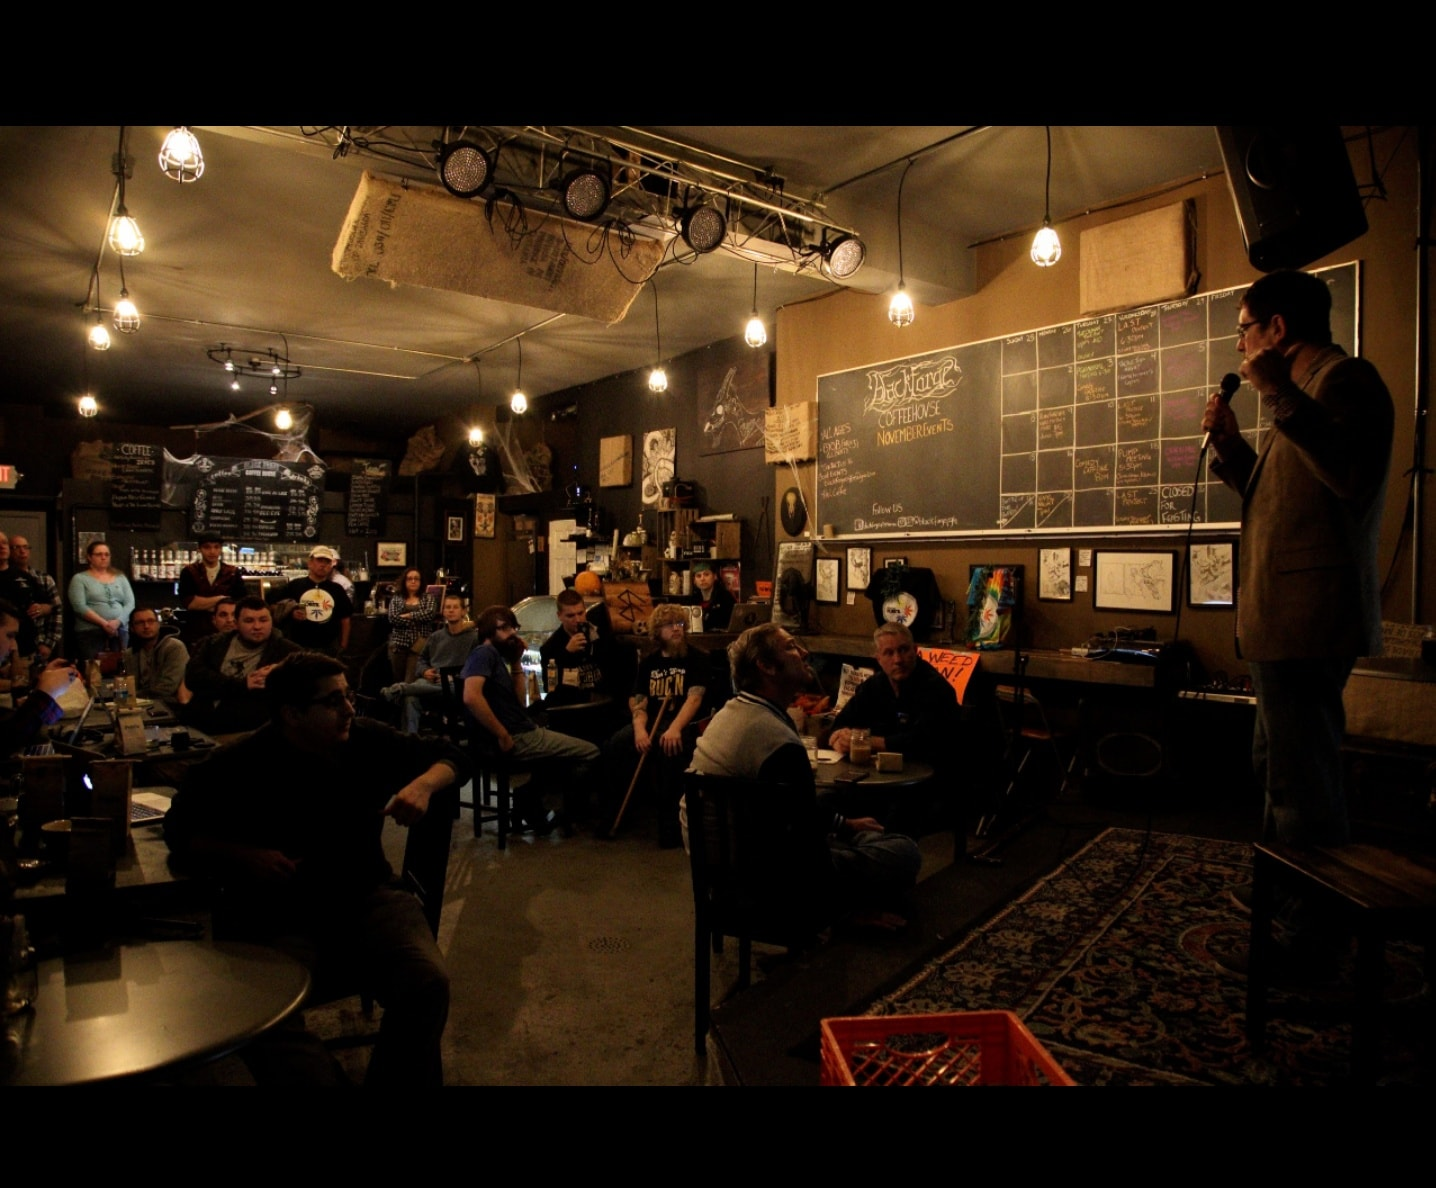 Allentown - Small intimate events such as poetry, open mics, acoustic/singer songwriter and meetings. Please check out our contact us if interested in booking.